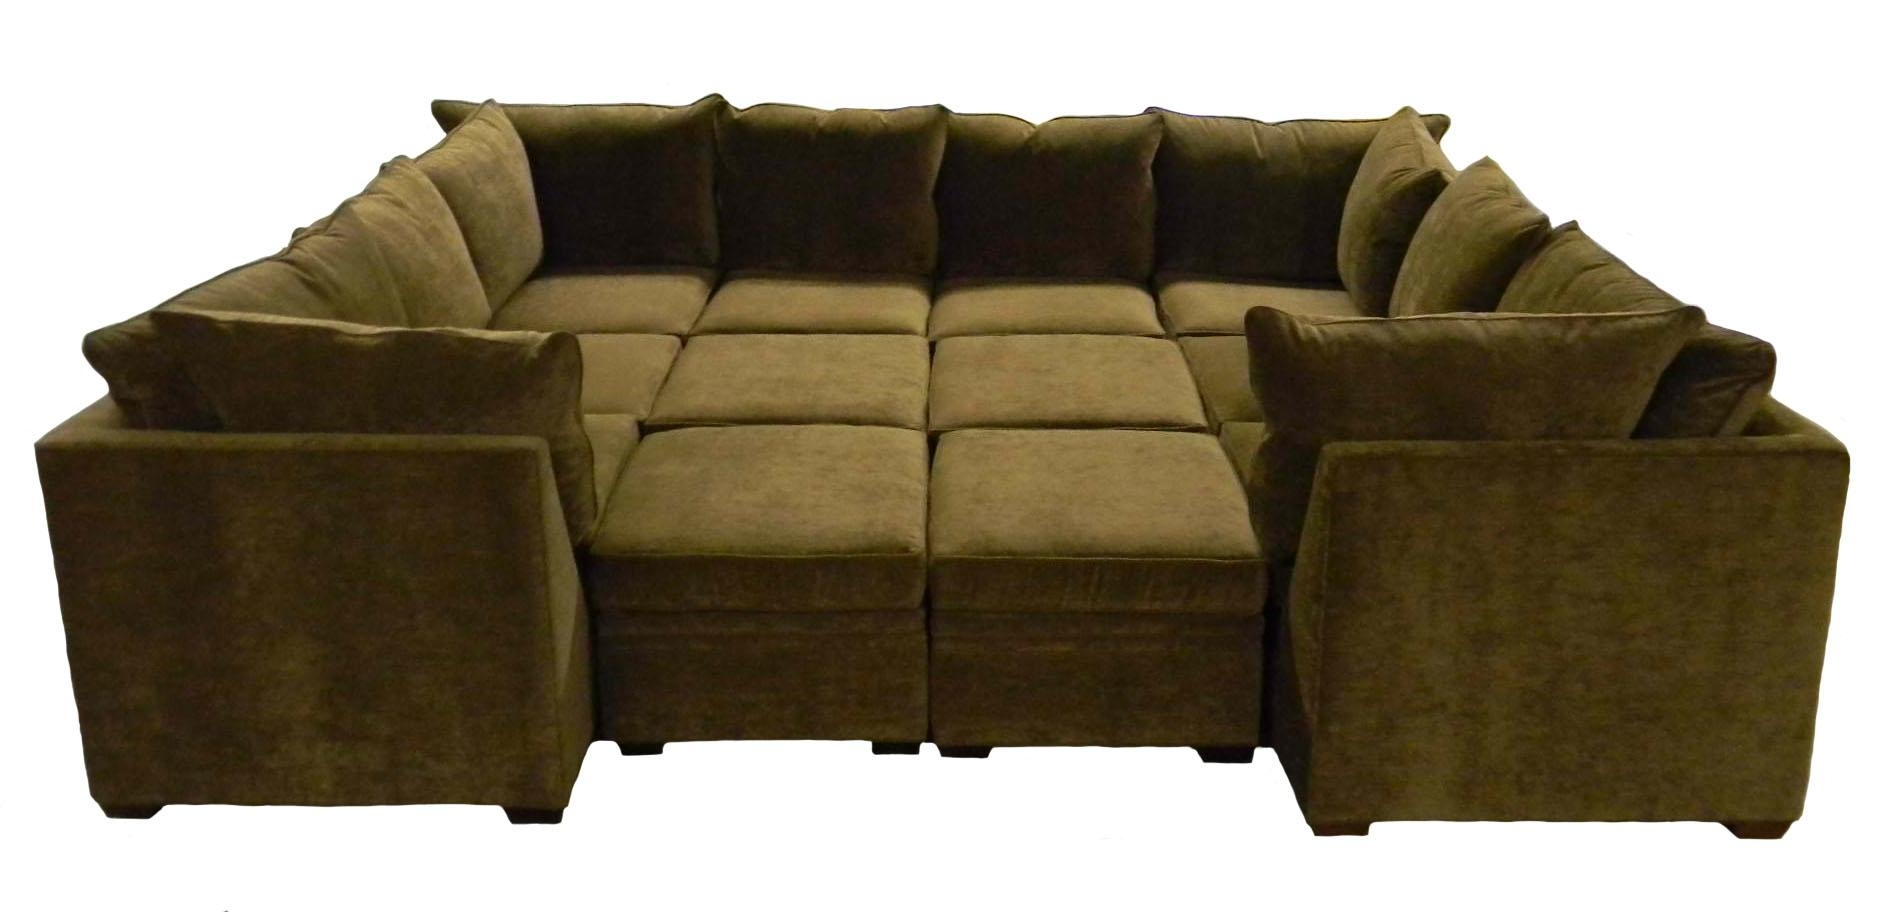 Media Room Sectional: Beautiful Pictures, Photos Of Remodeling In Media Room Sectional Sofas (View 5 of 20)